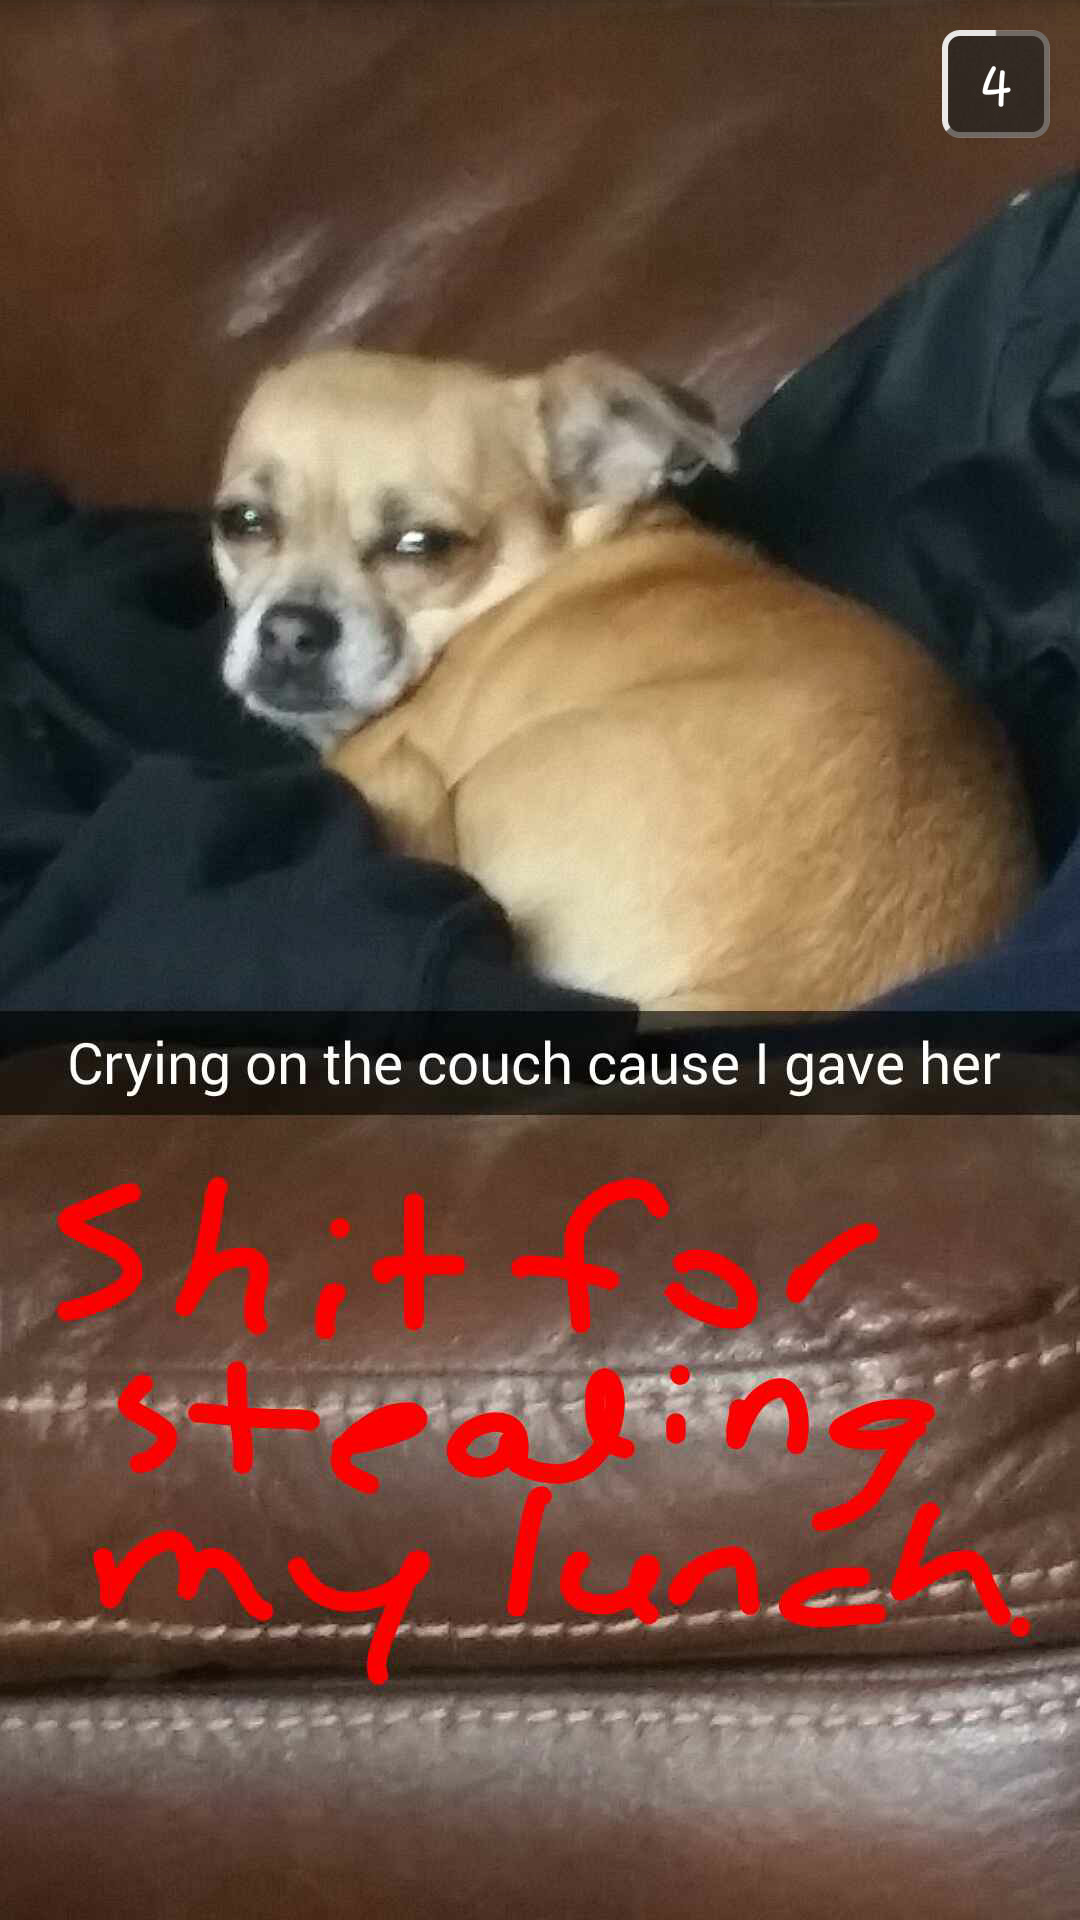 My sister's dog was not happy - meme